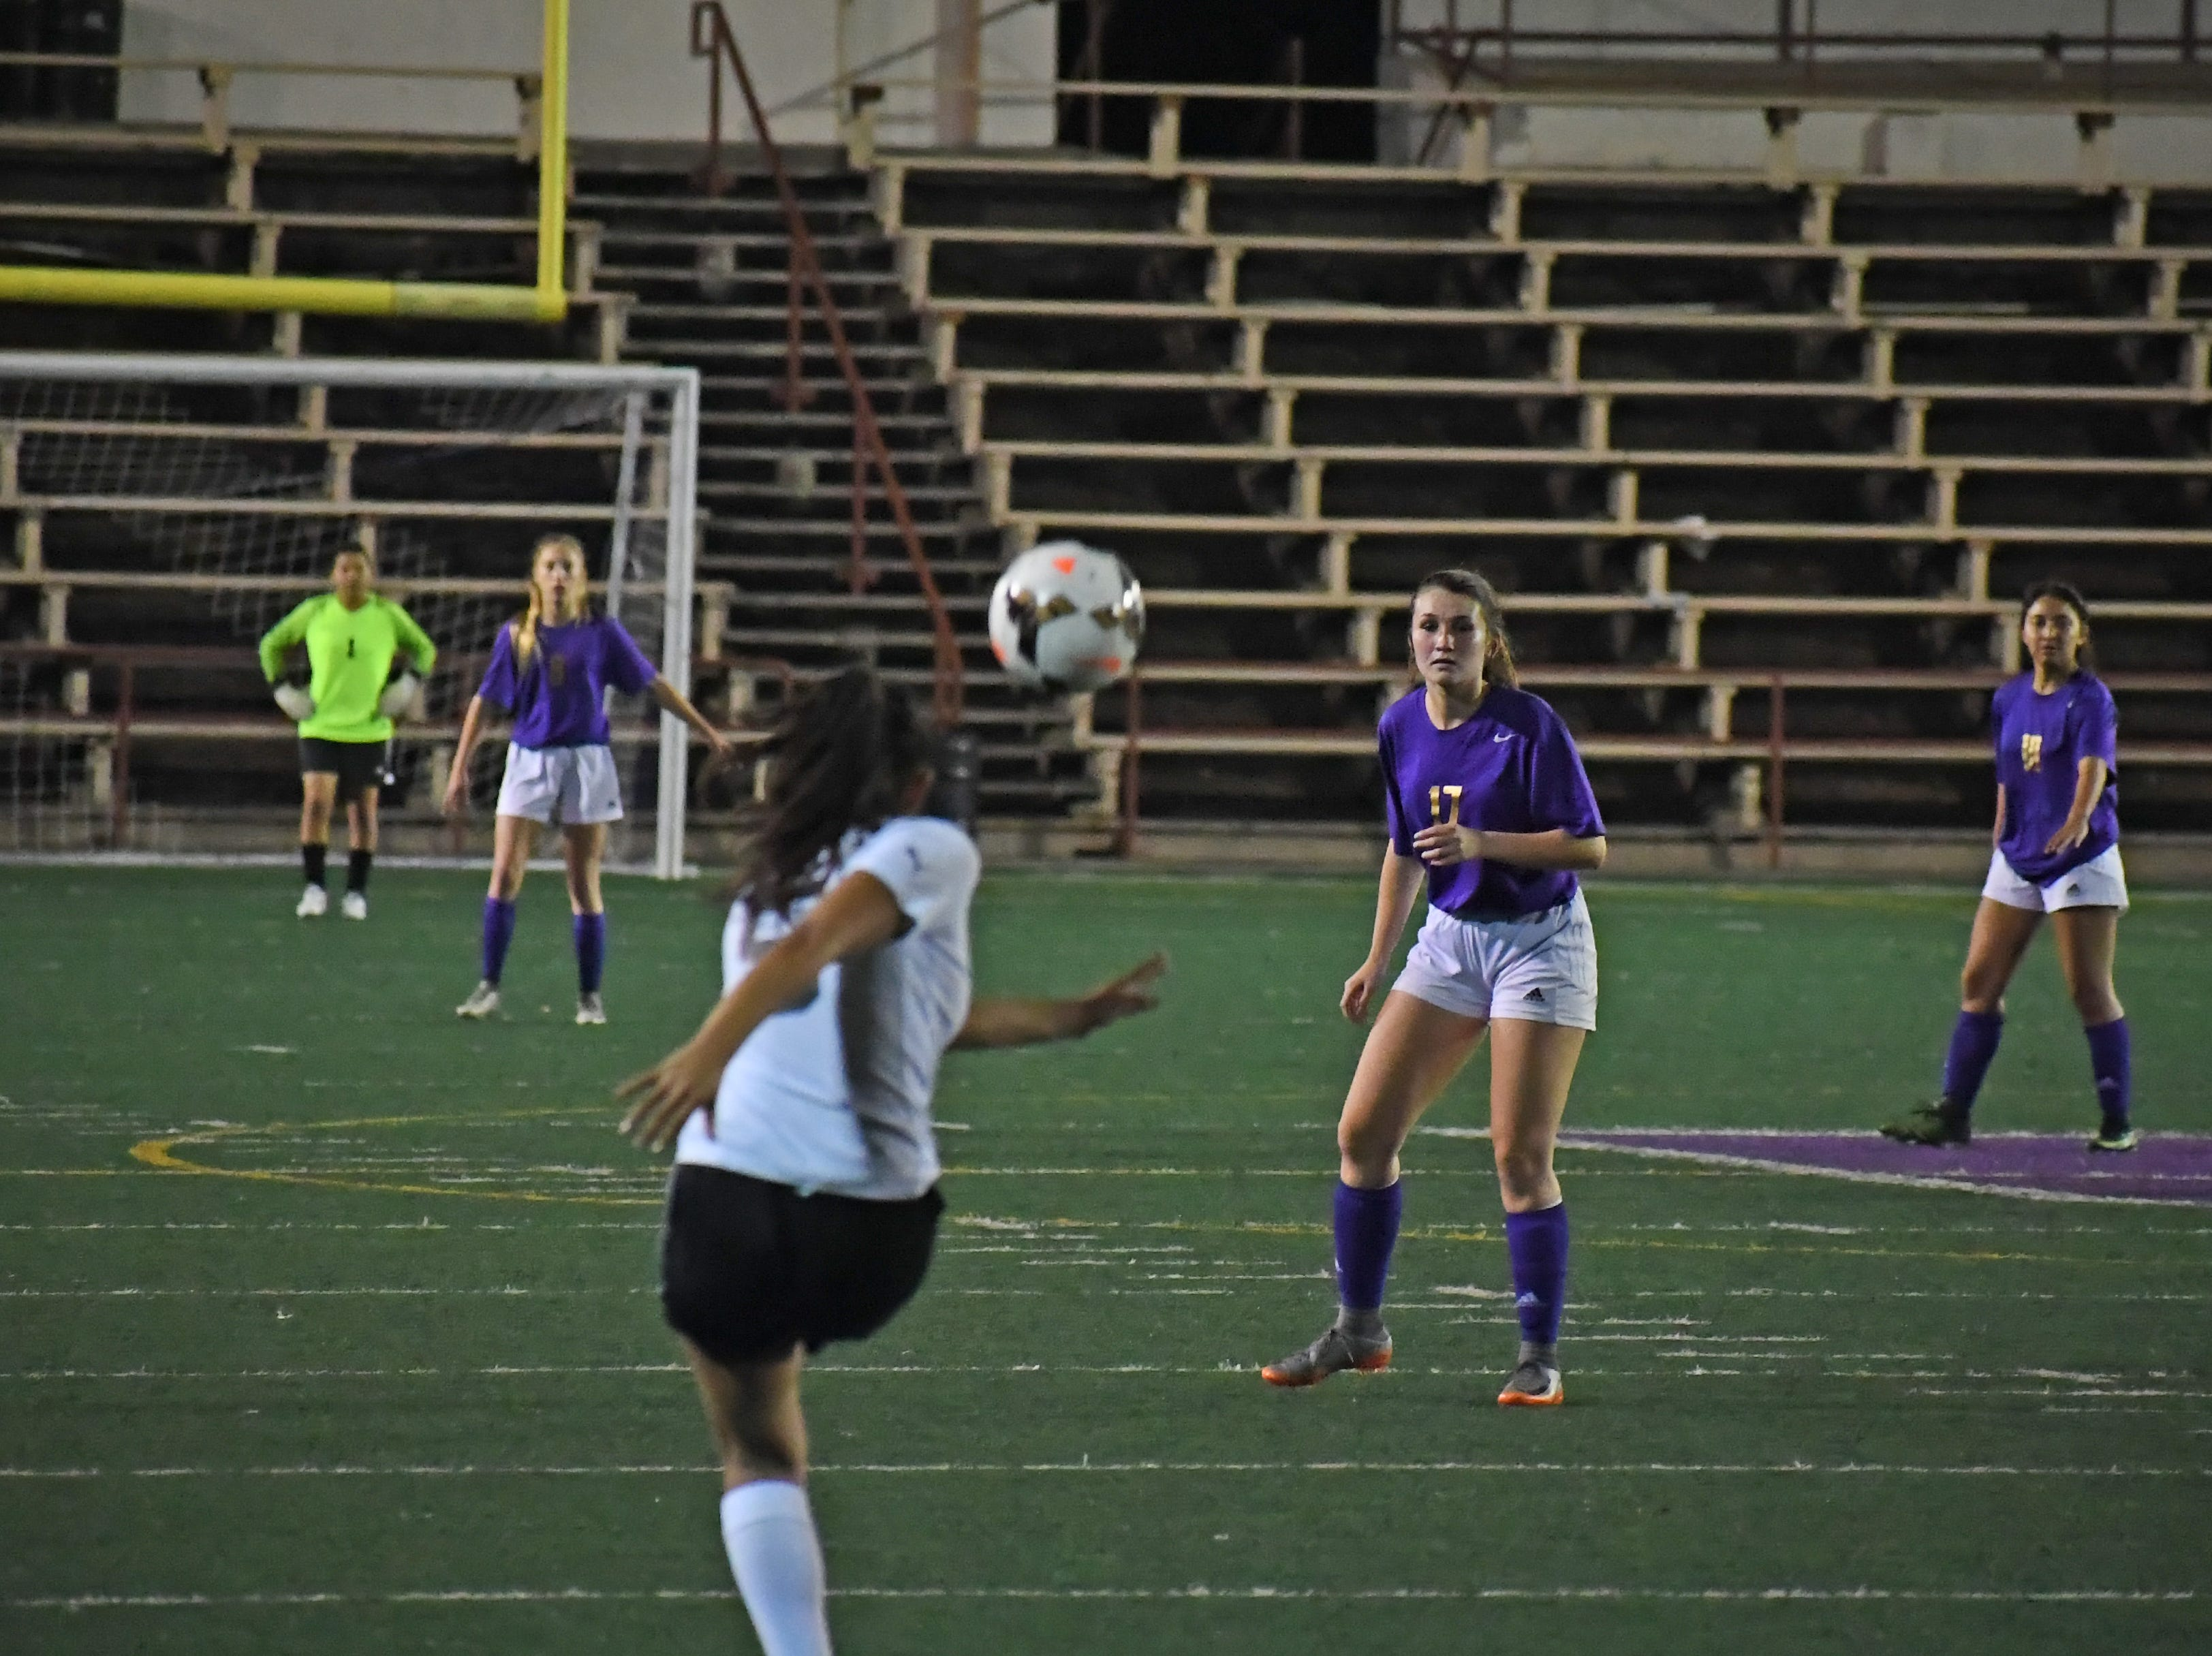 Senior Chloe Thompson (17) waits to chase down the ball after a free kick.